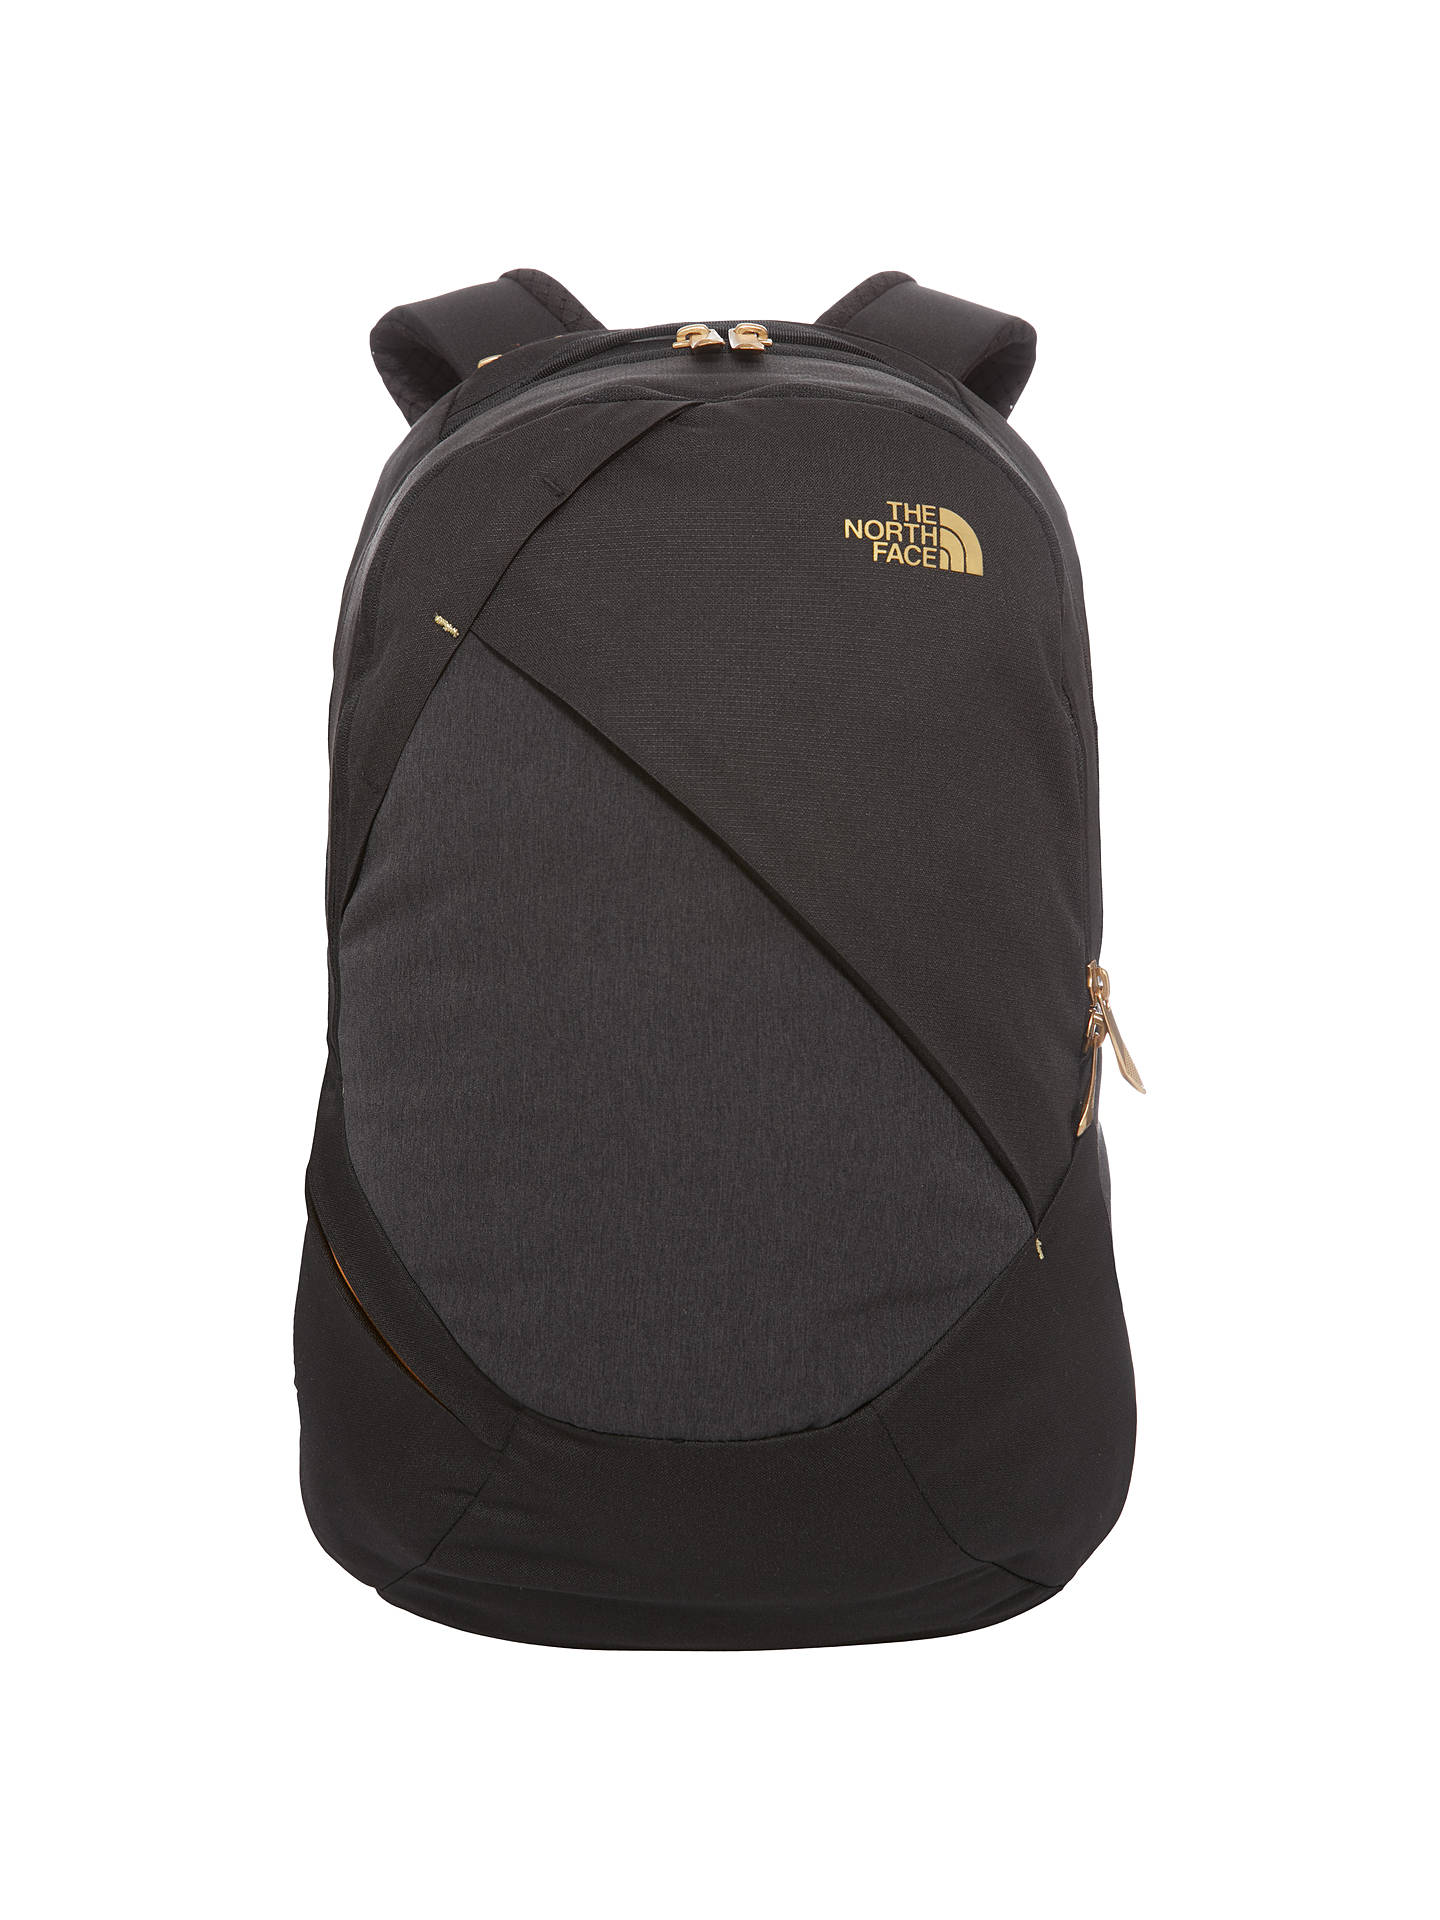 competitive price 48f27 e9d07 The North Face Women's Isabella Backpack, Black/Grey at John ...